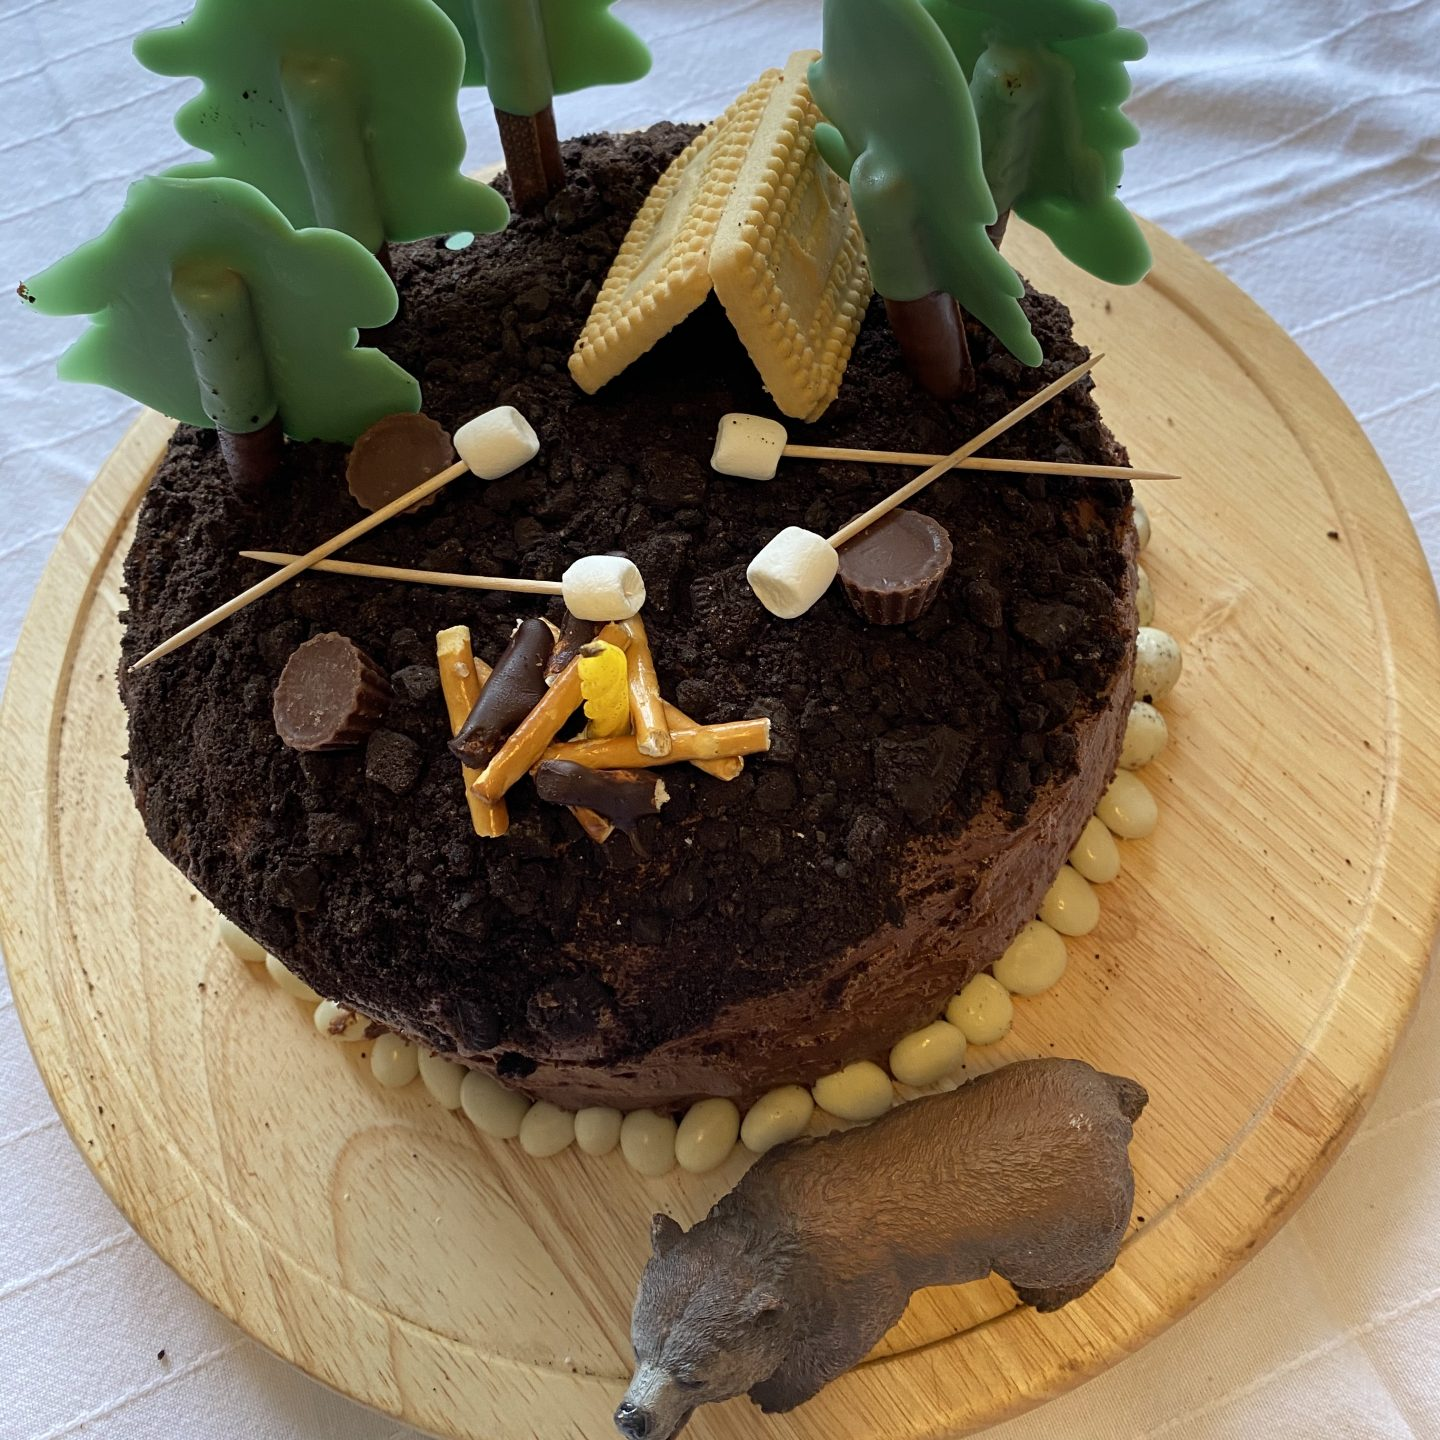 a camping birthday cake with a campfire, trees, stores and a bear